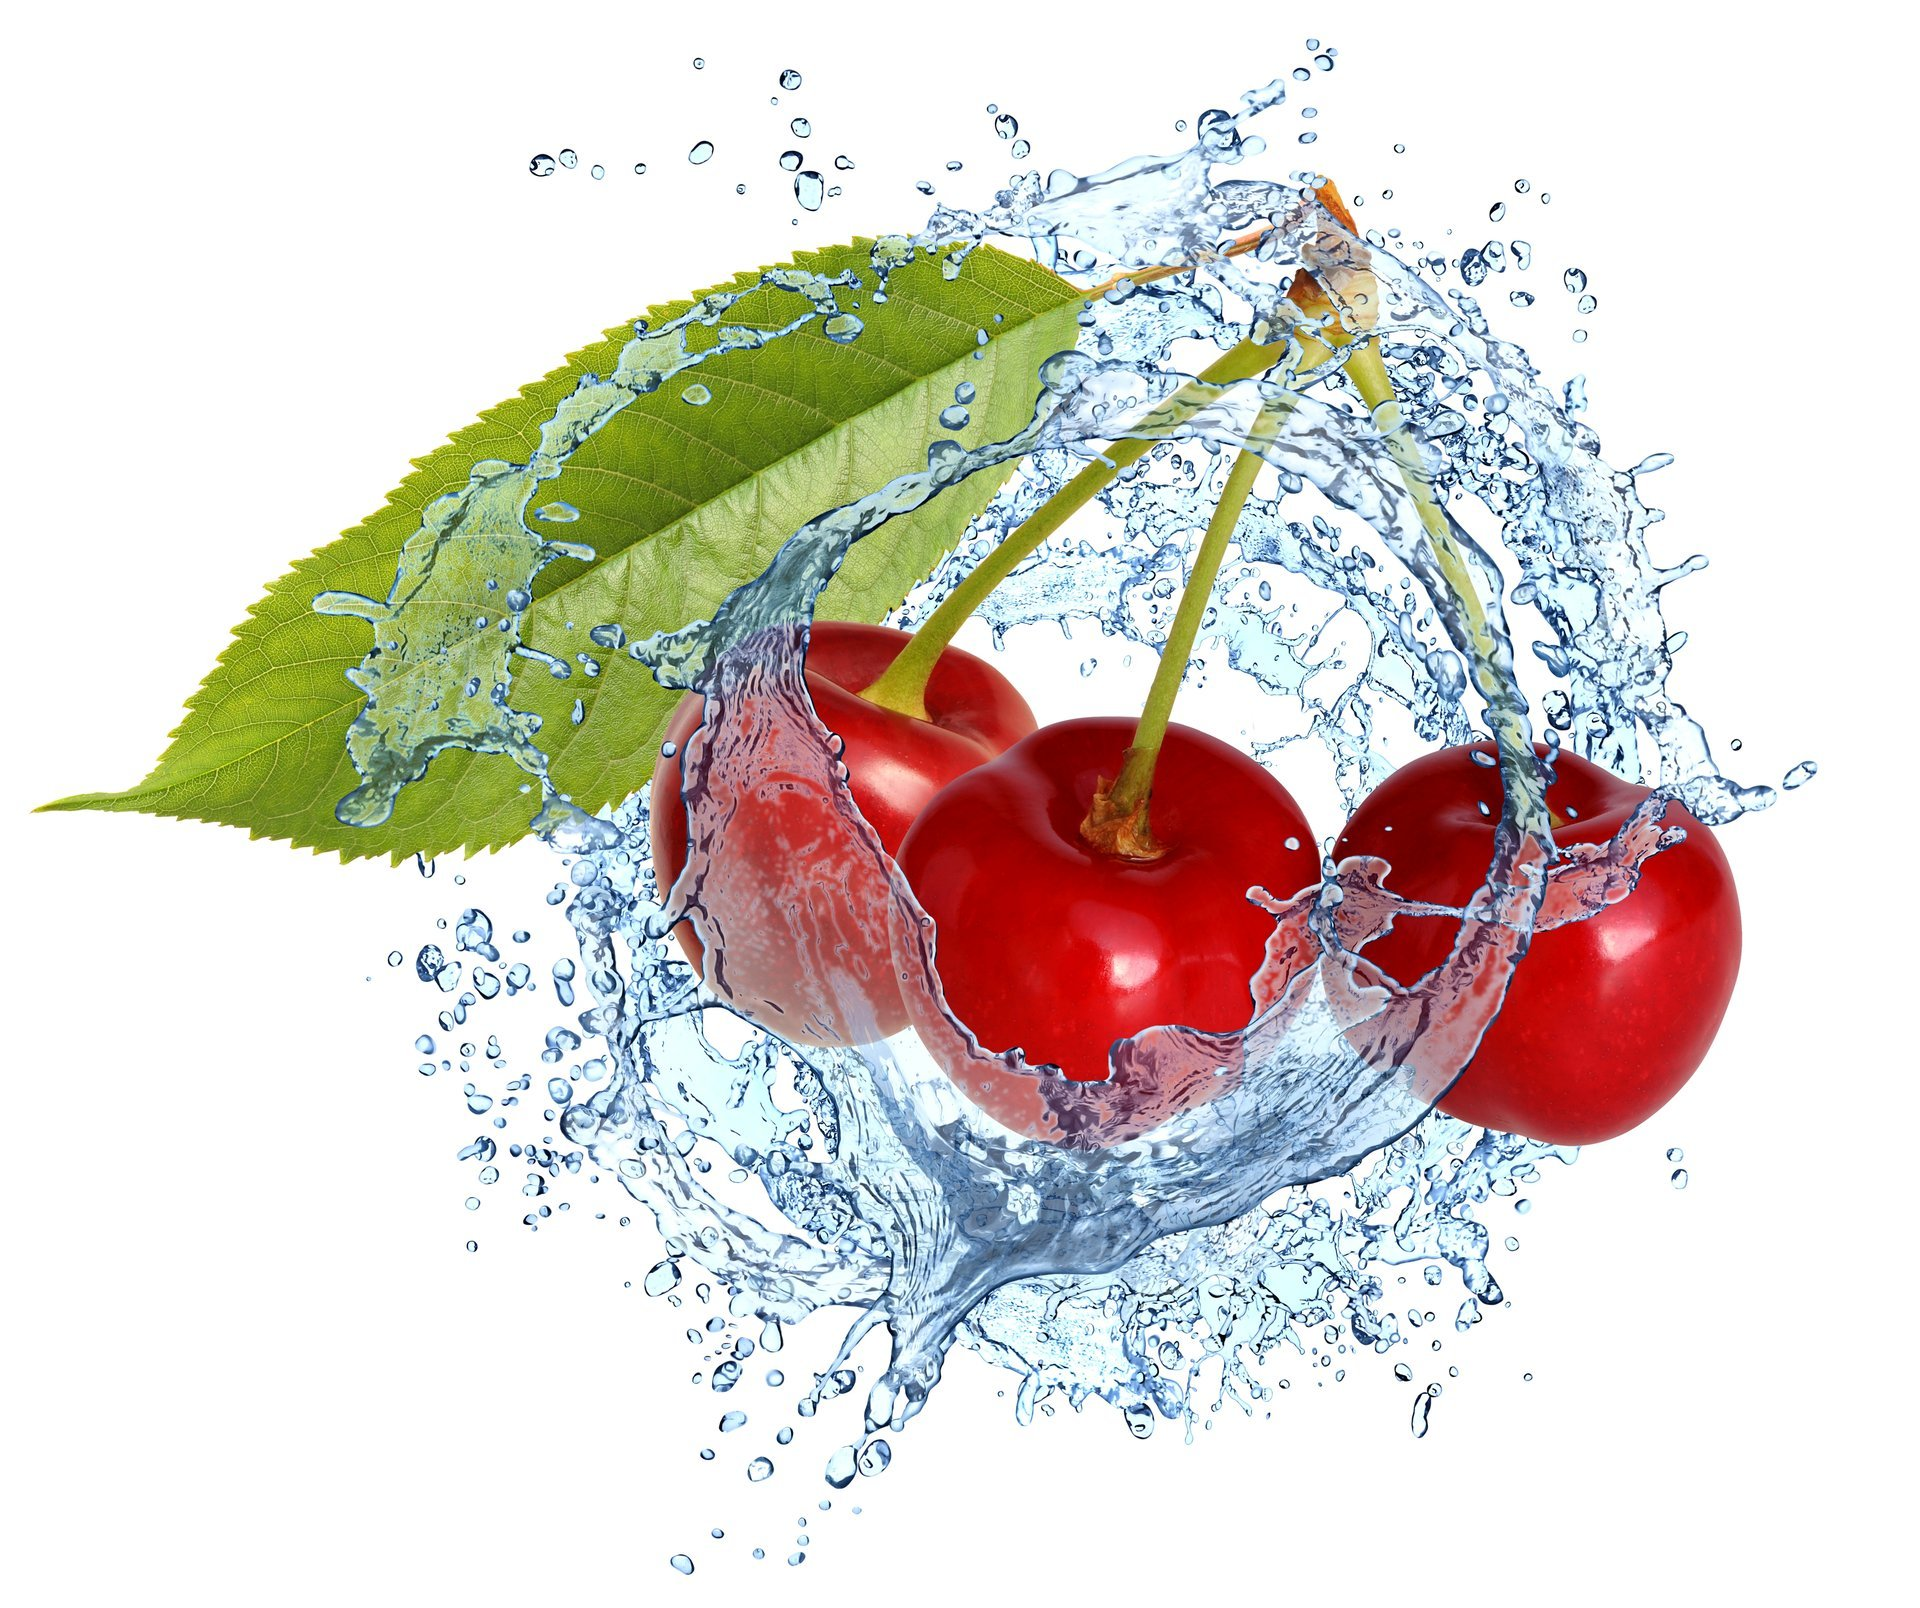 cherry splash water drops fresh berries spray